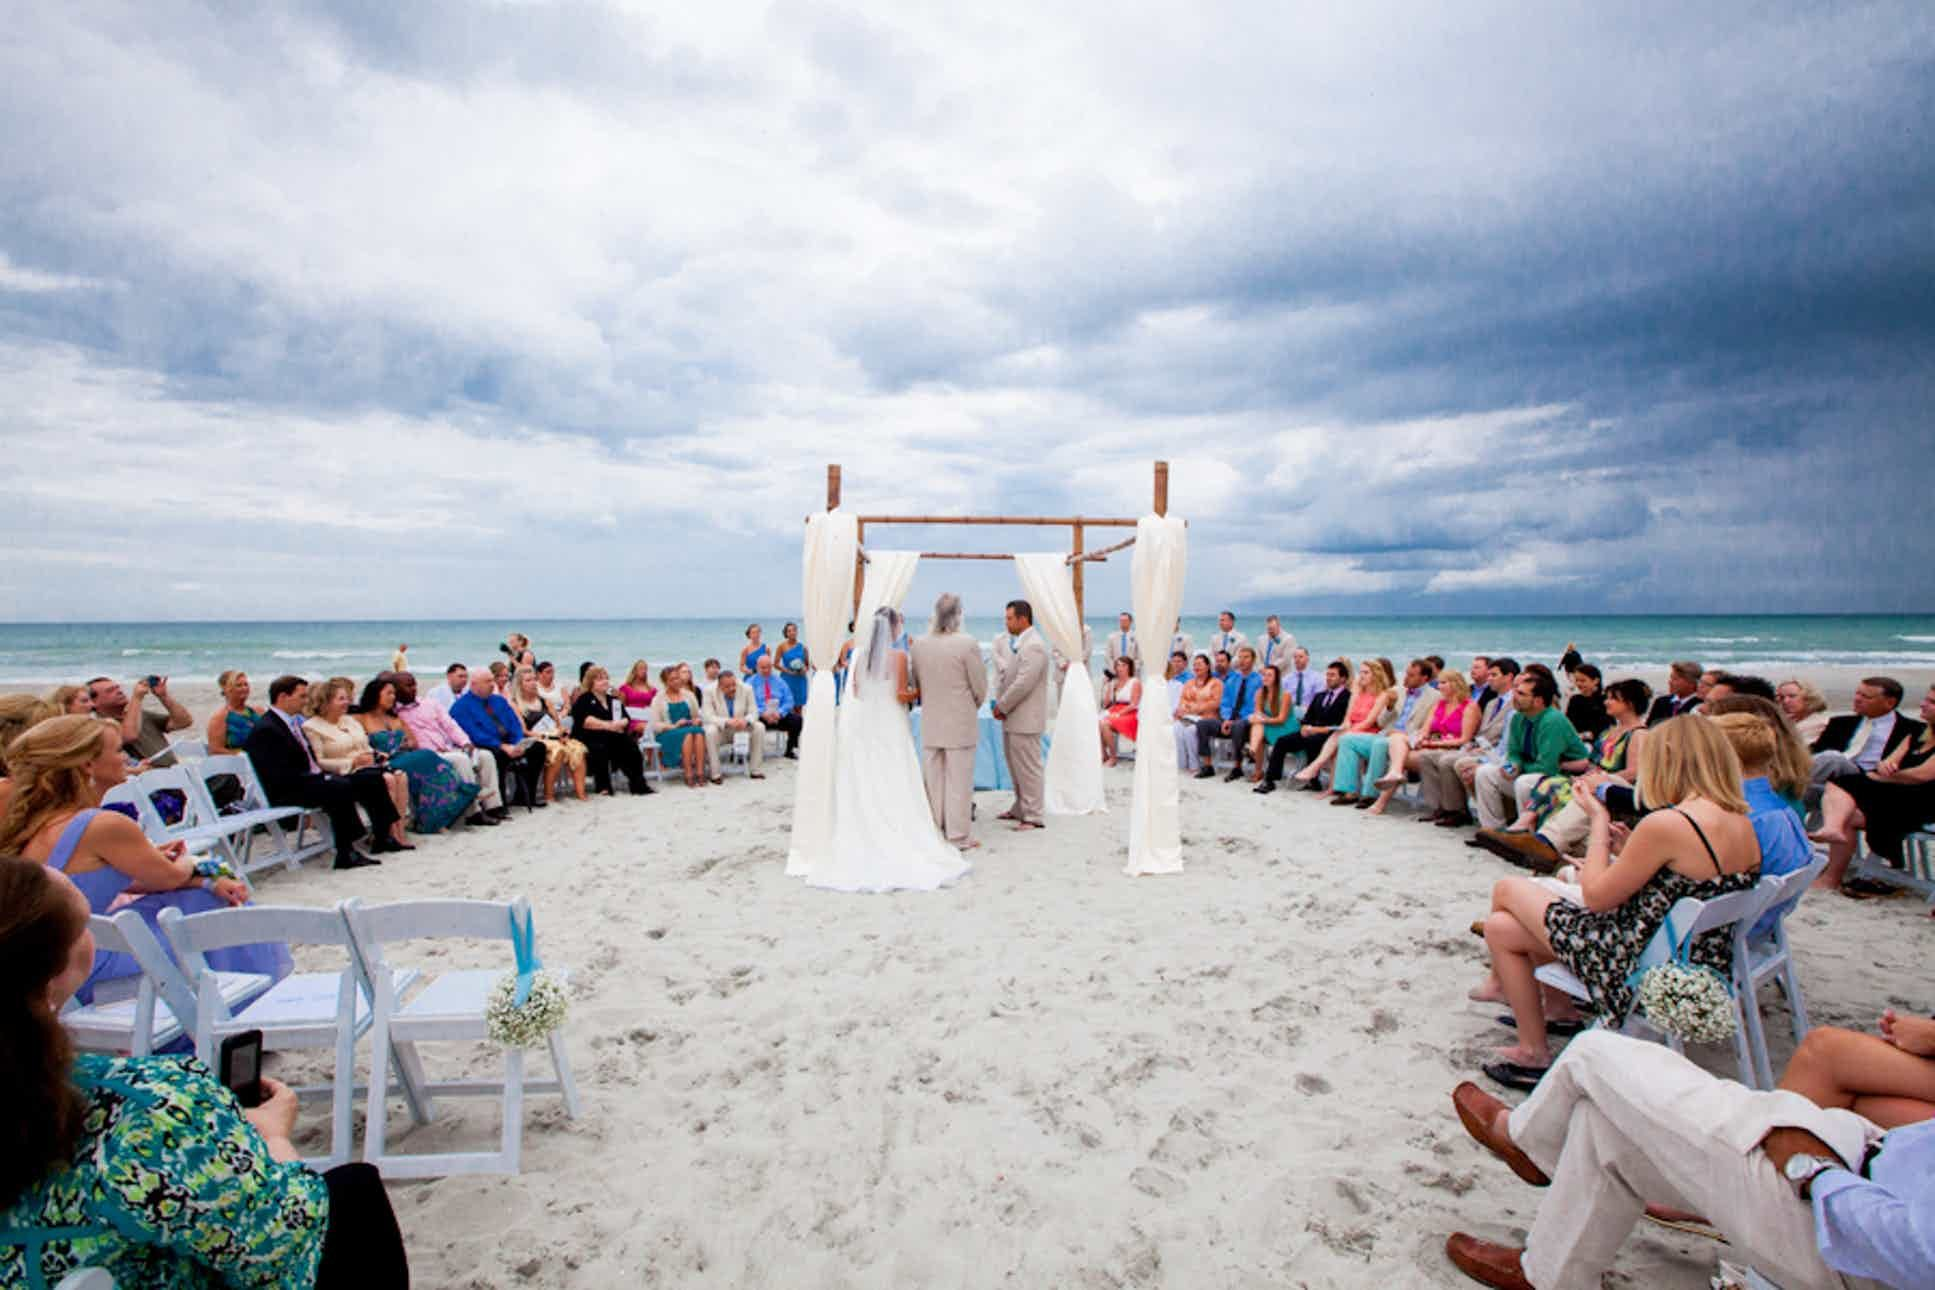 The Ocean Club At Grande Dunes Myrtle Beach Weddings Grand Strand In 2020 Myrtle Beach Wedding Wedding Venues Beach Myrtle Beach